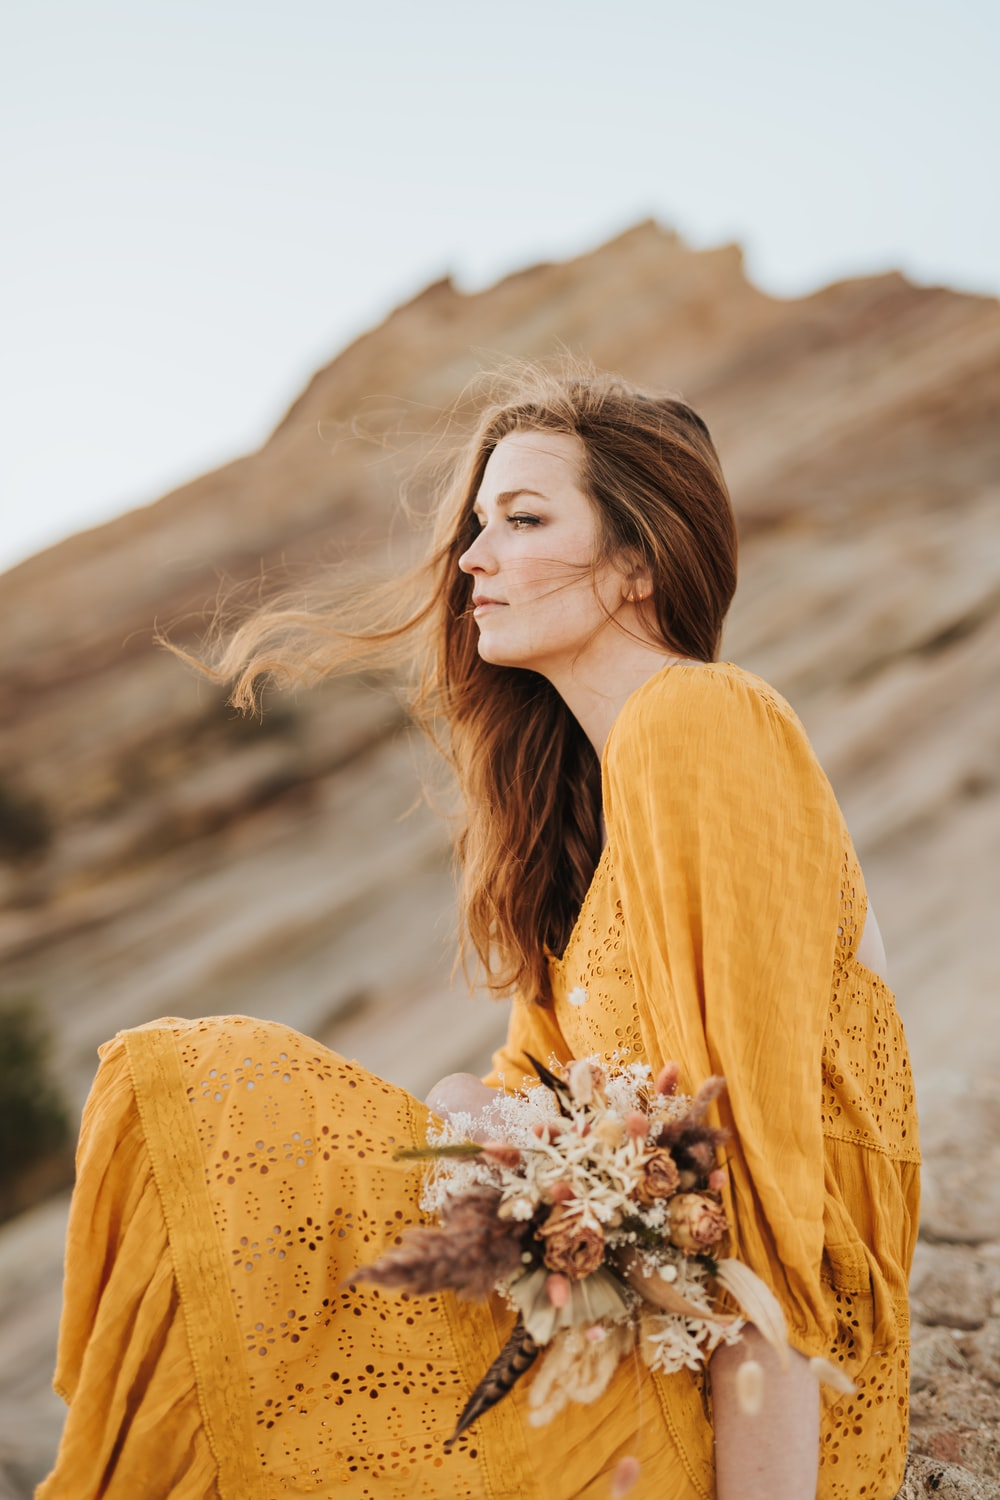 woman in yellow long sleeve shirt holding white flowers